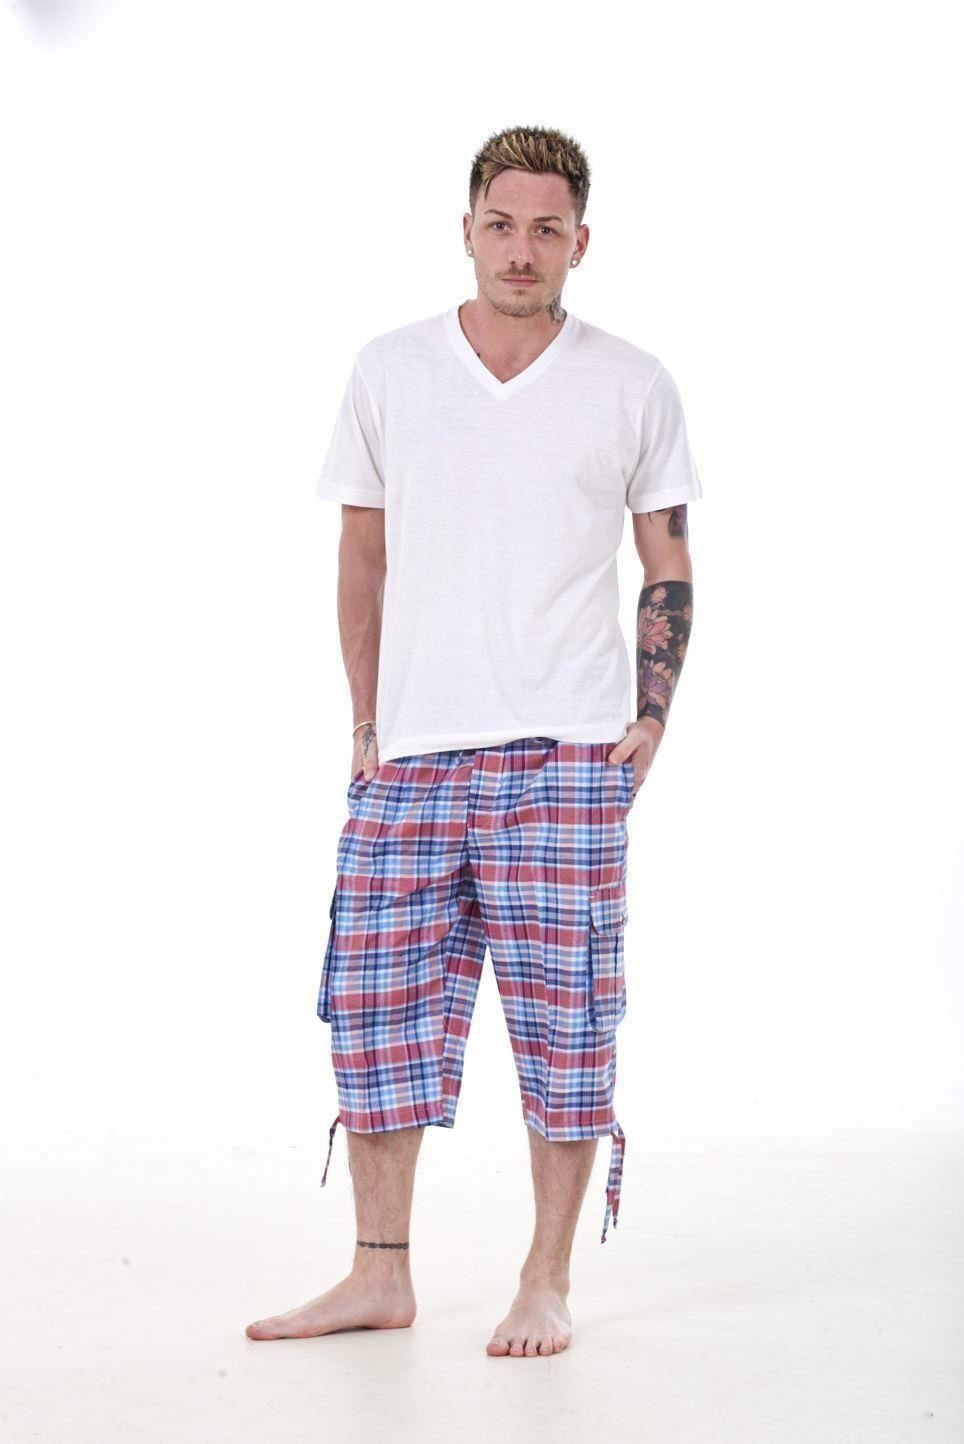 Mens-Check-Shorts-3-4-Length-by-Malay-Apparel-Cotton-Blend-Lounge-Casual-Wear thumbnail 40